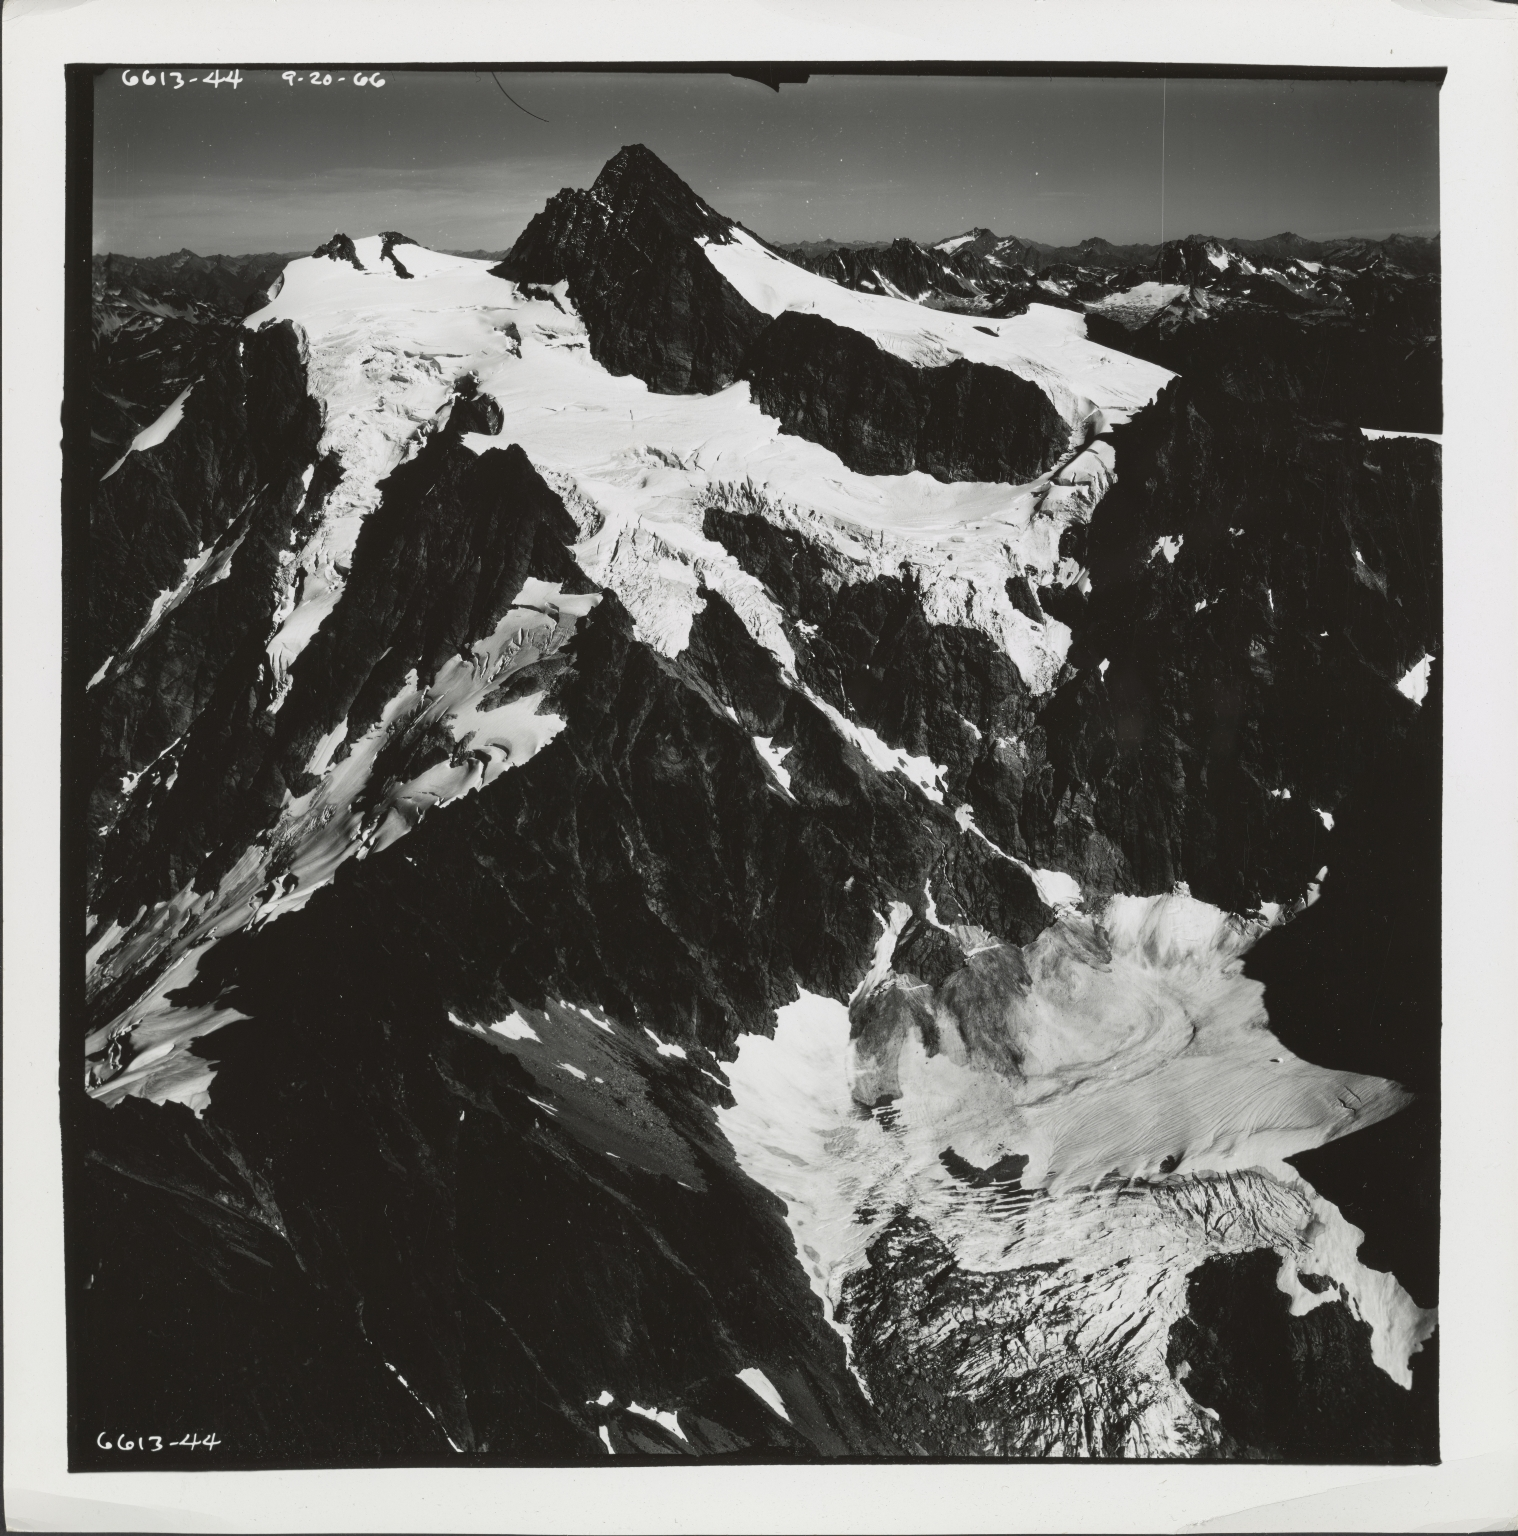 Glacier in North Cascades, aerial photograph 6613-44, Washington